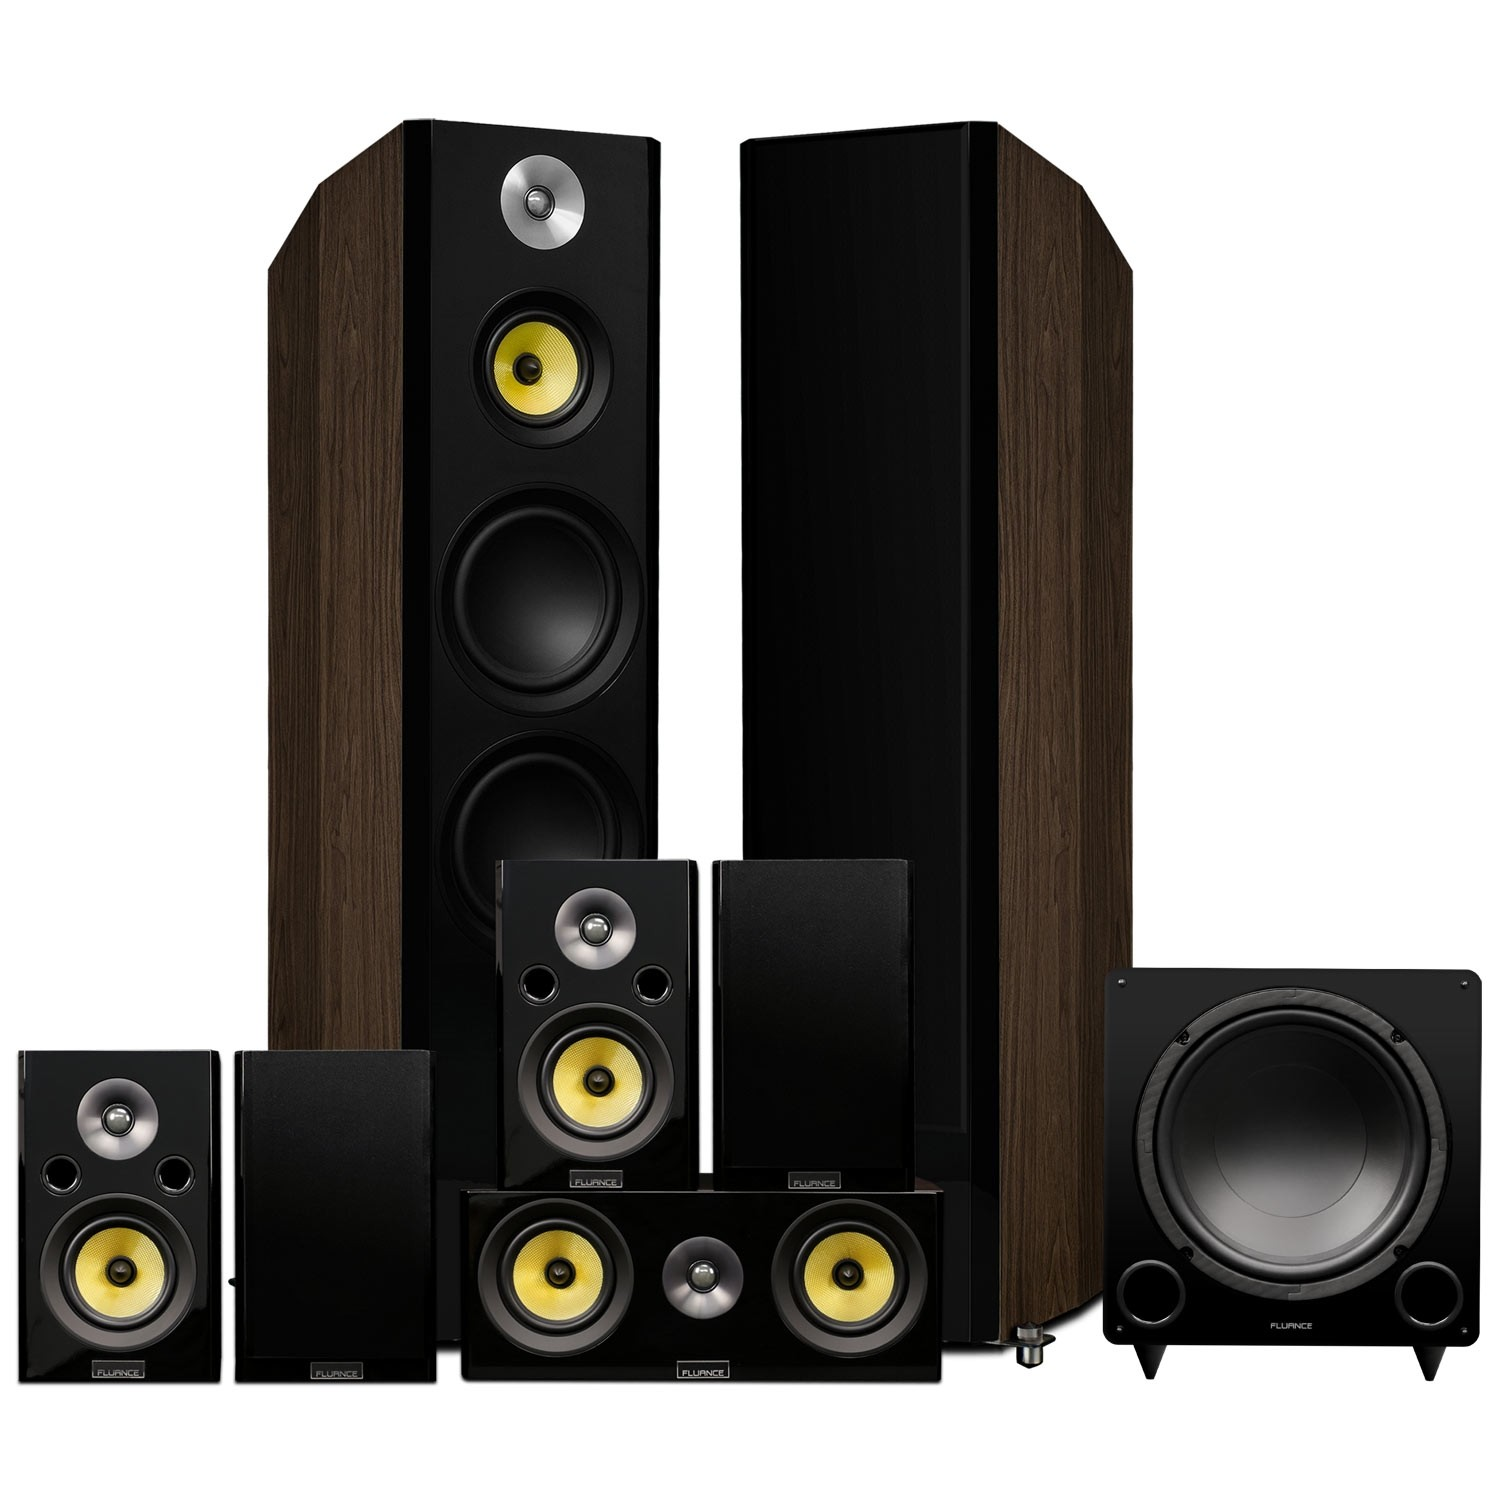 Signature Series Natural Walnut Surround Sound Home Theater 7.1 Channel Speaker System